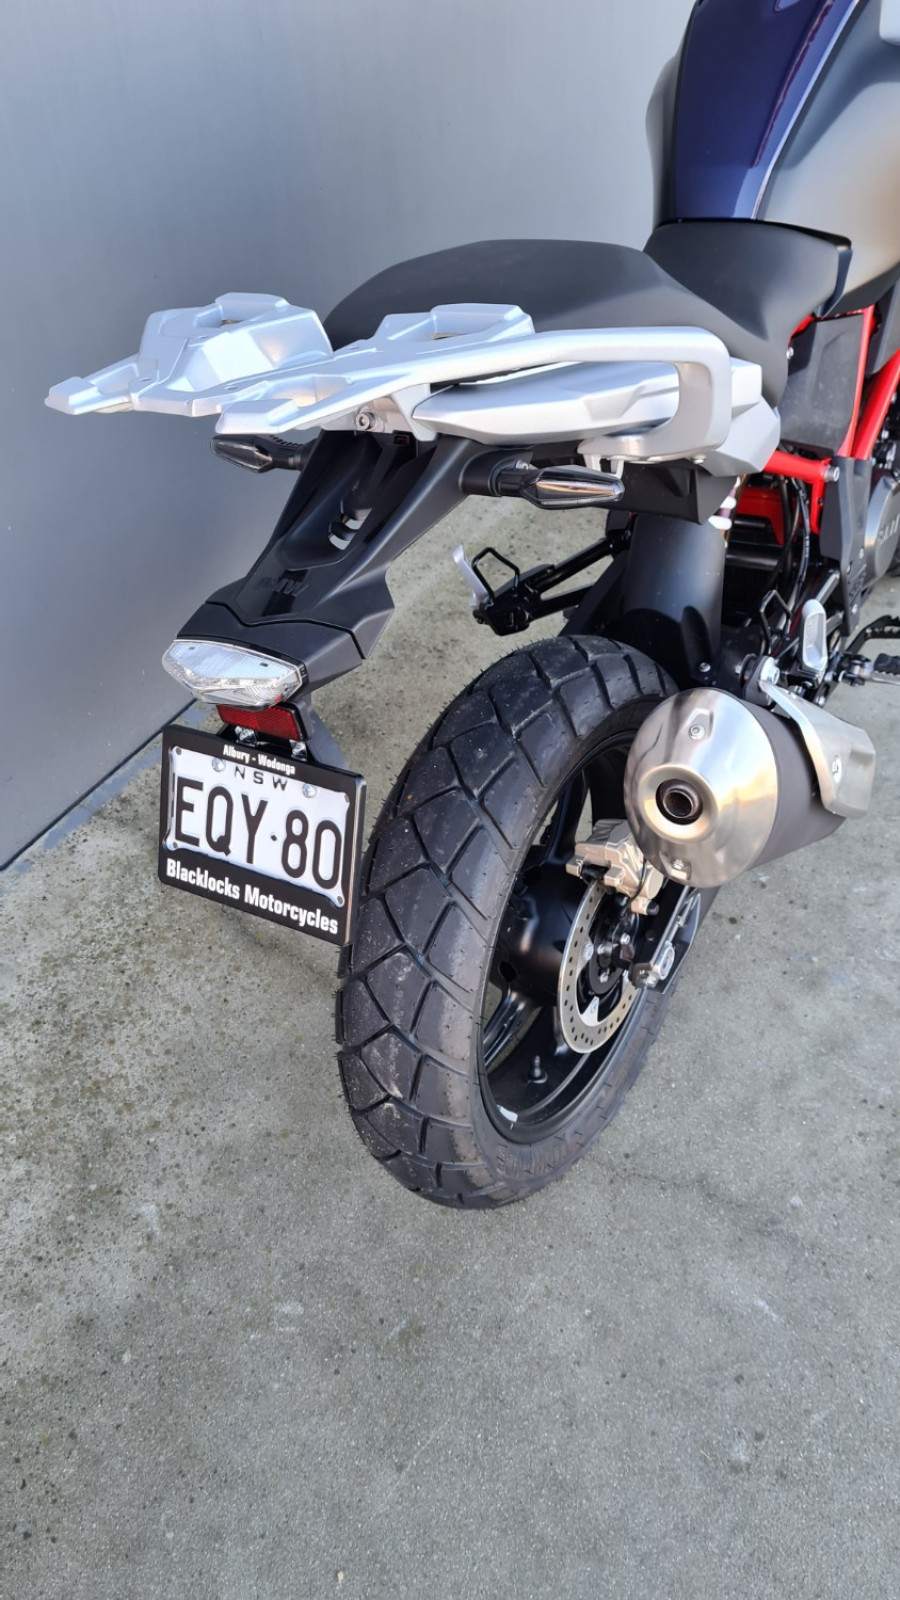 2021 BMW G 310 GS G G 310 GS Motorcycle Image 8